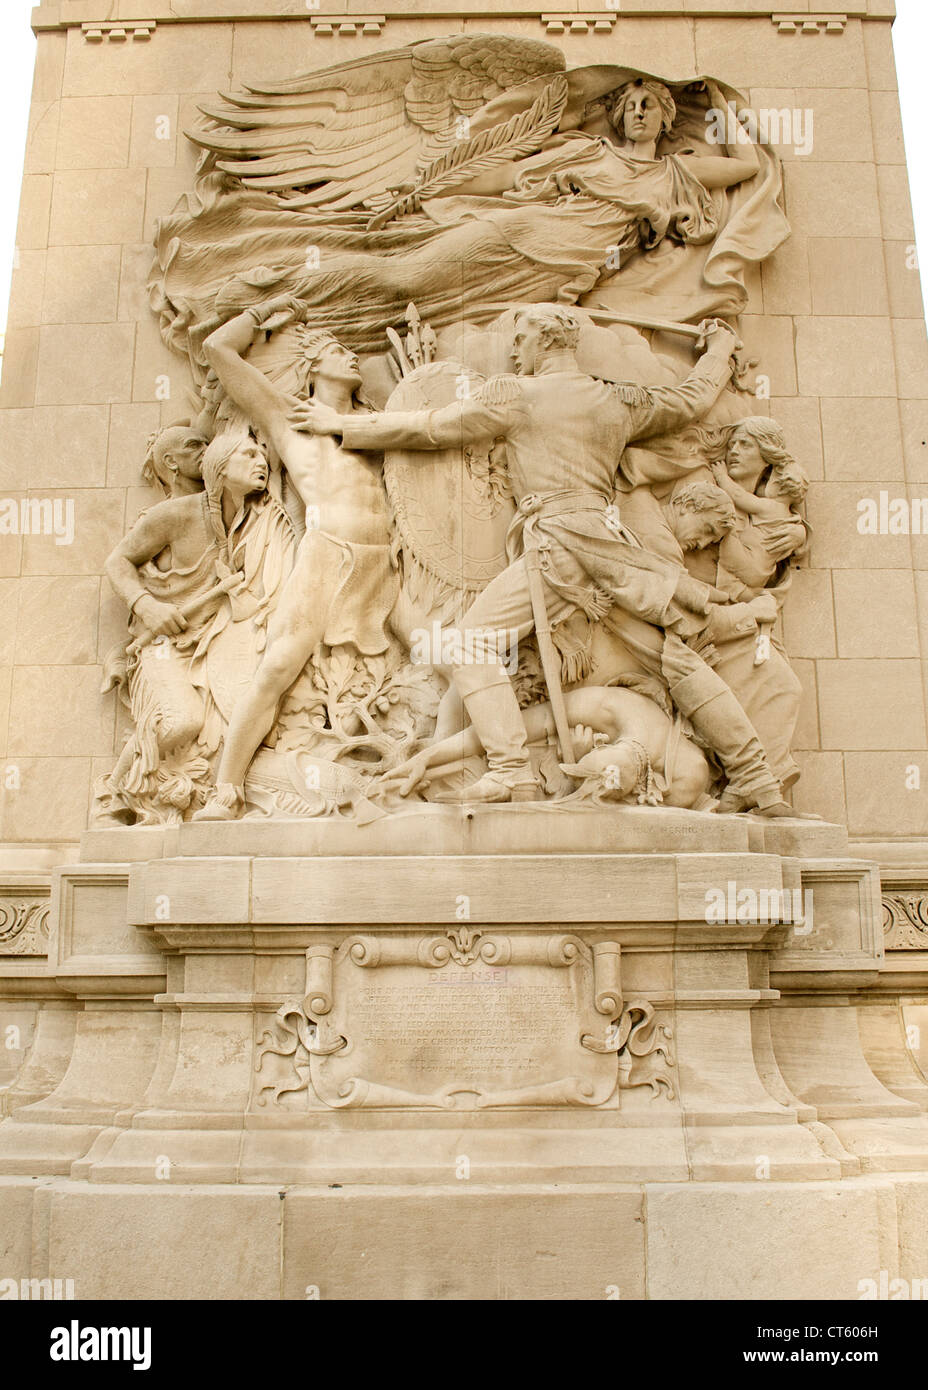 Detail of the decorative sculpture on the Michigan Avenue Bridge in Chicago, Illinois, USA. - Stock Image